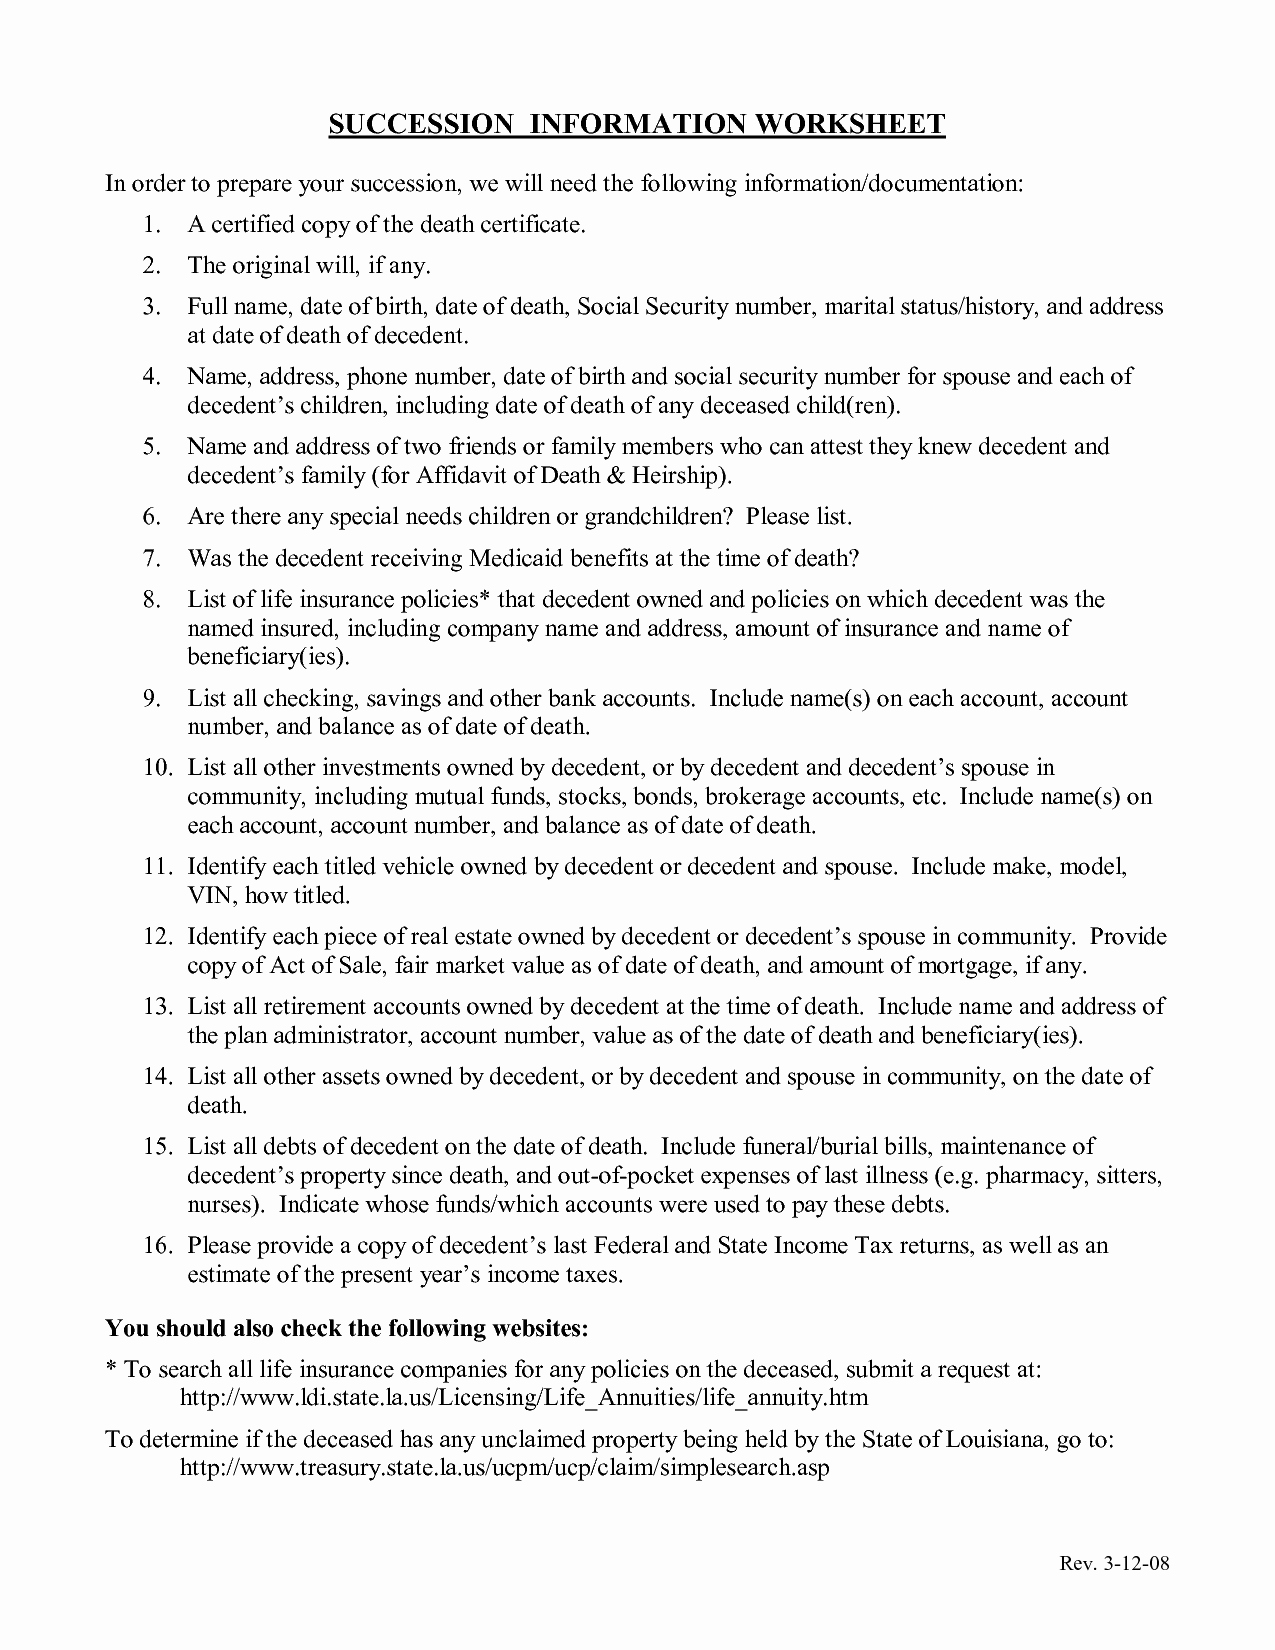 Ecological Succession Worksheet Answers Lovely 10 Best Of Ecological Succession Worksheet Answer